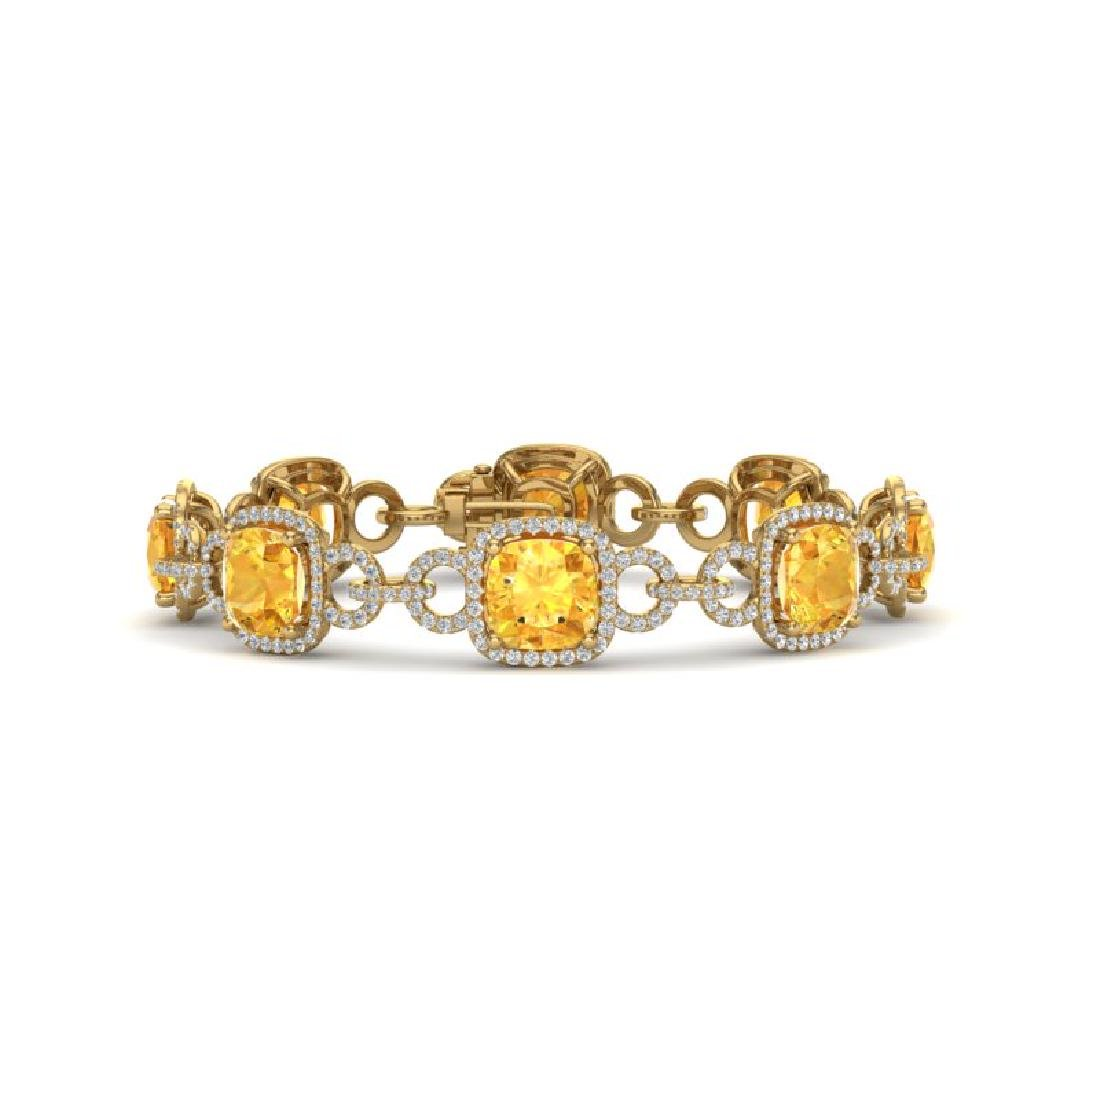 30 CTW Citrine & VS/SI Diamond Bracelet 14K Yellow Gold